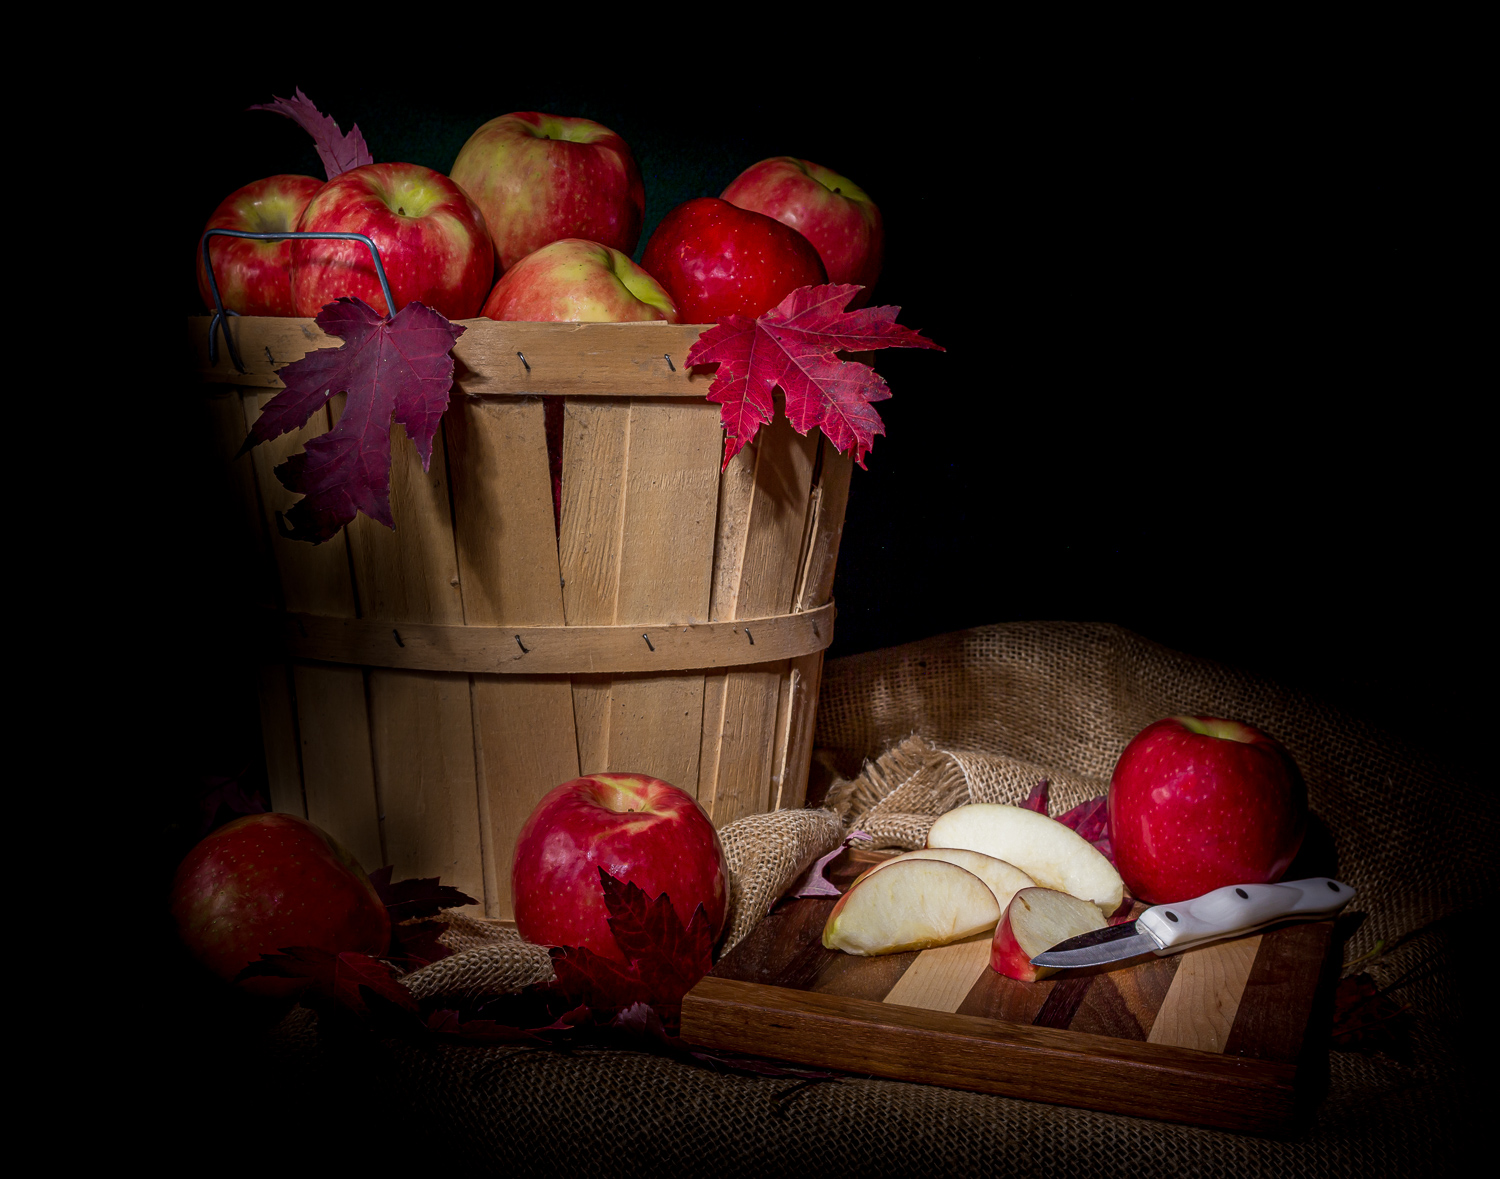 https://i0.wp.com/digital-photography-school.com/wp-content/uploads/2019/10/light-painting-technique-autumn-apples.jpg?resize=1500%2C1179&ssl=1